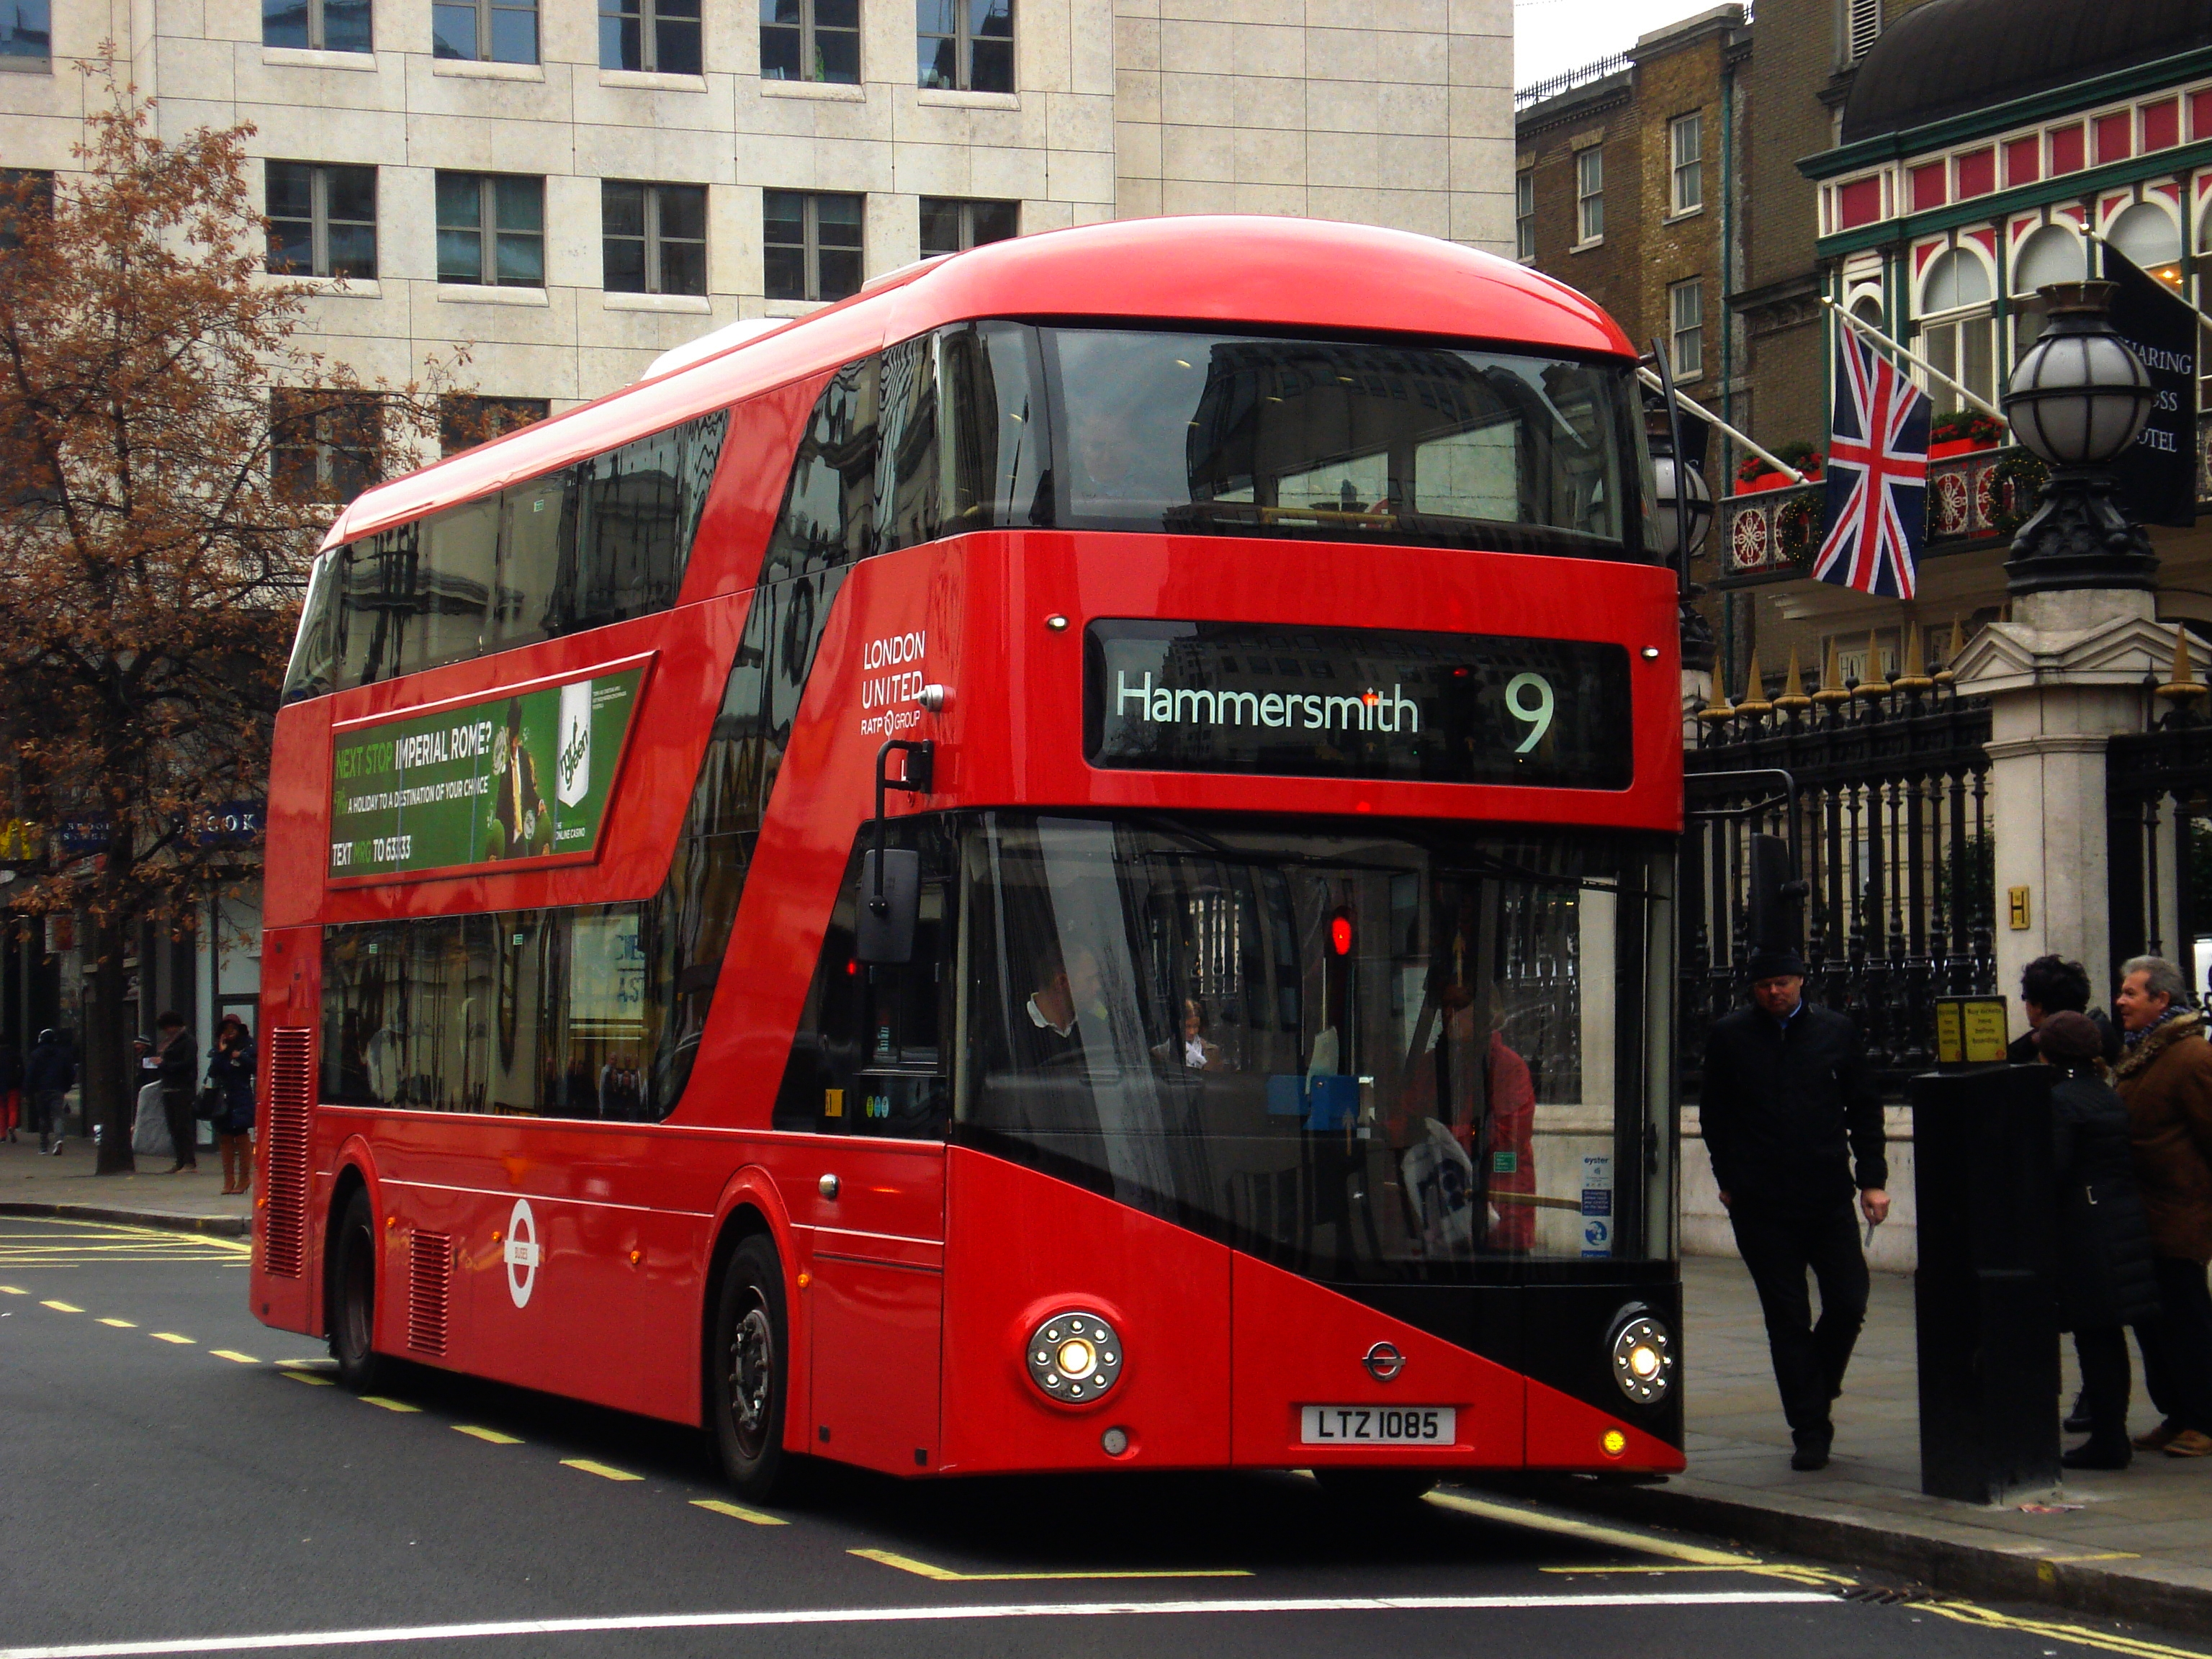 London_United_LT85_on_Route_9,_Charing_Cross